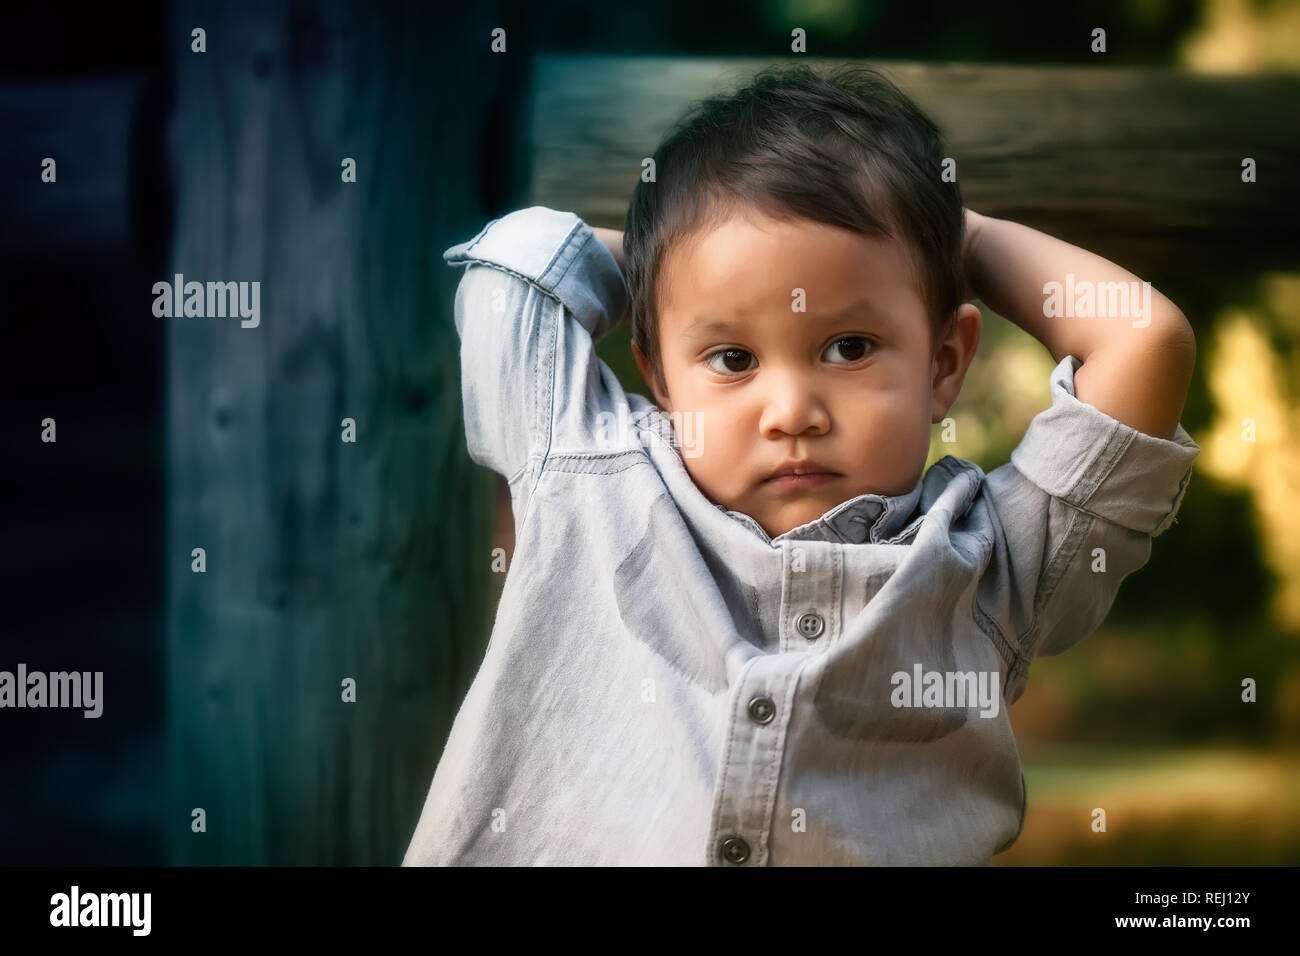 Young toddler boy that looks troubled, worried, or expressing anti social behavior while holding his head with his arms. - Stock Image